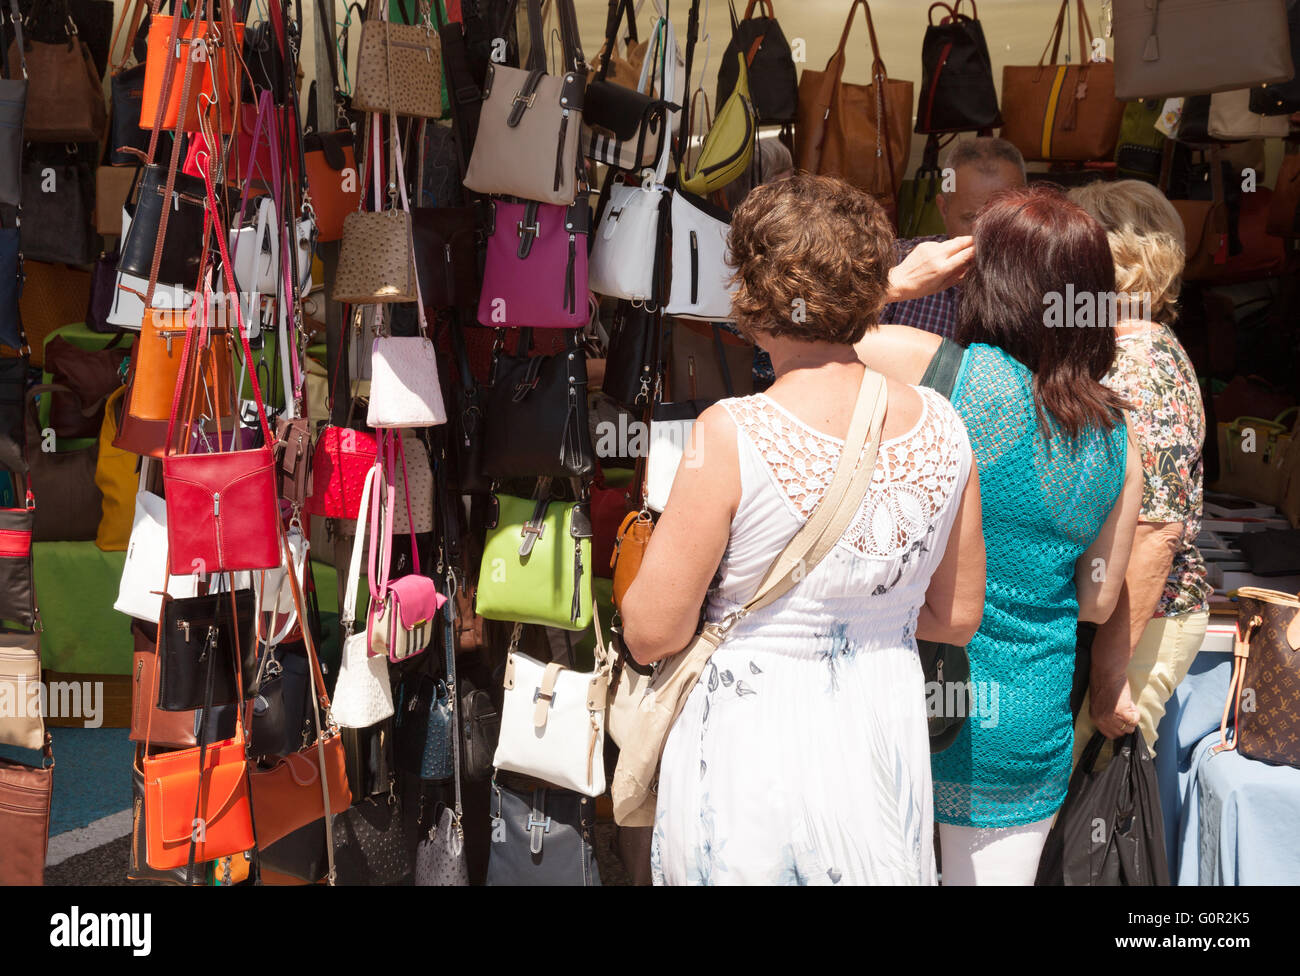 Women shopping for leather handbags at a market stall fcc76d04ffed6